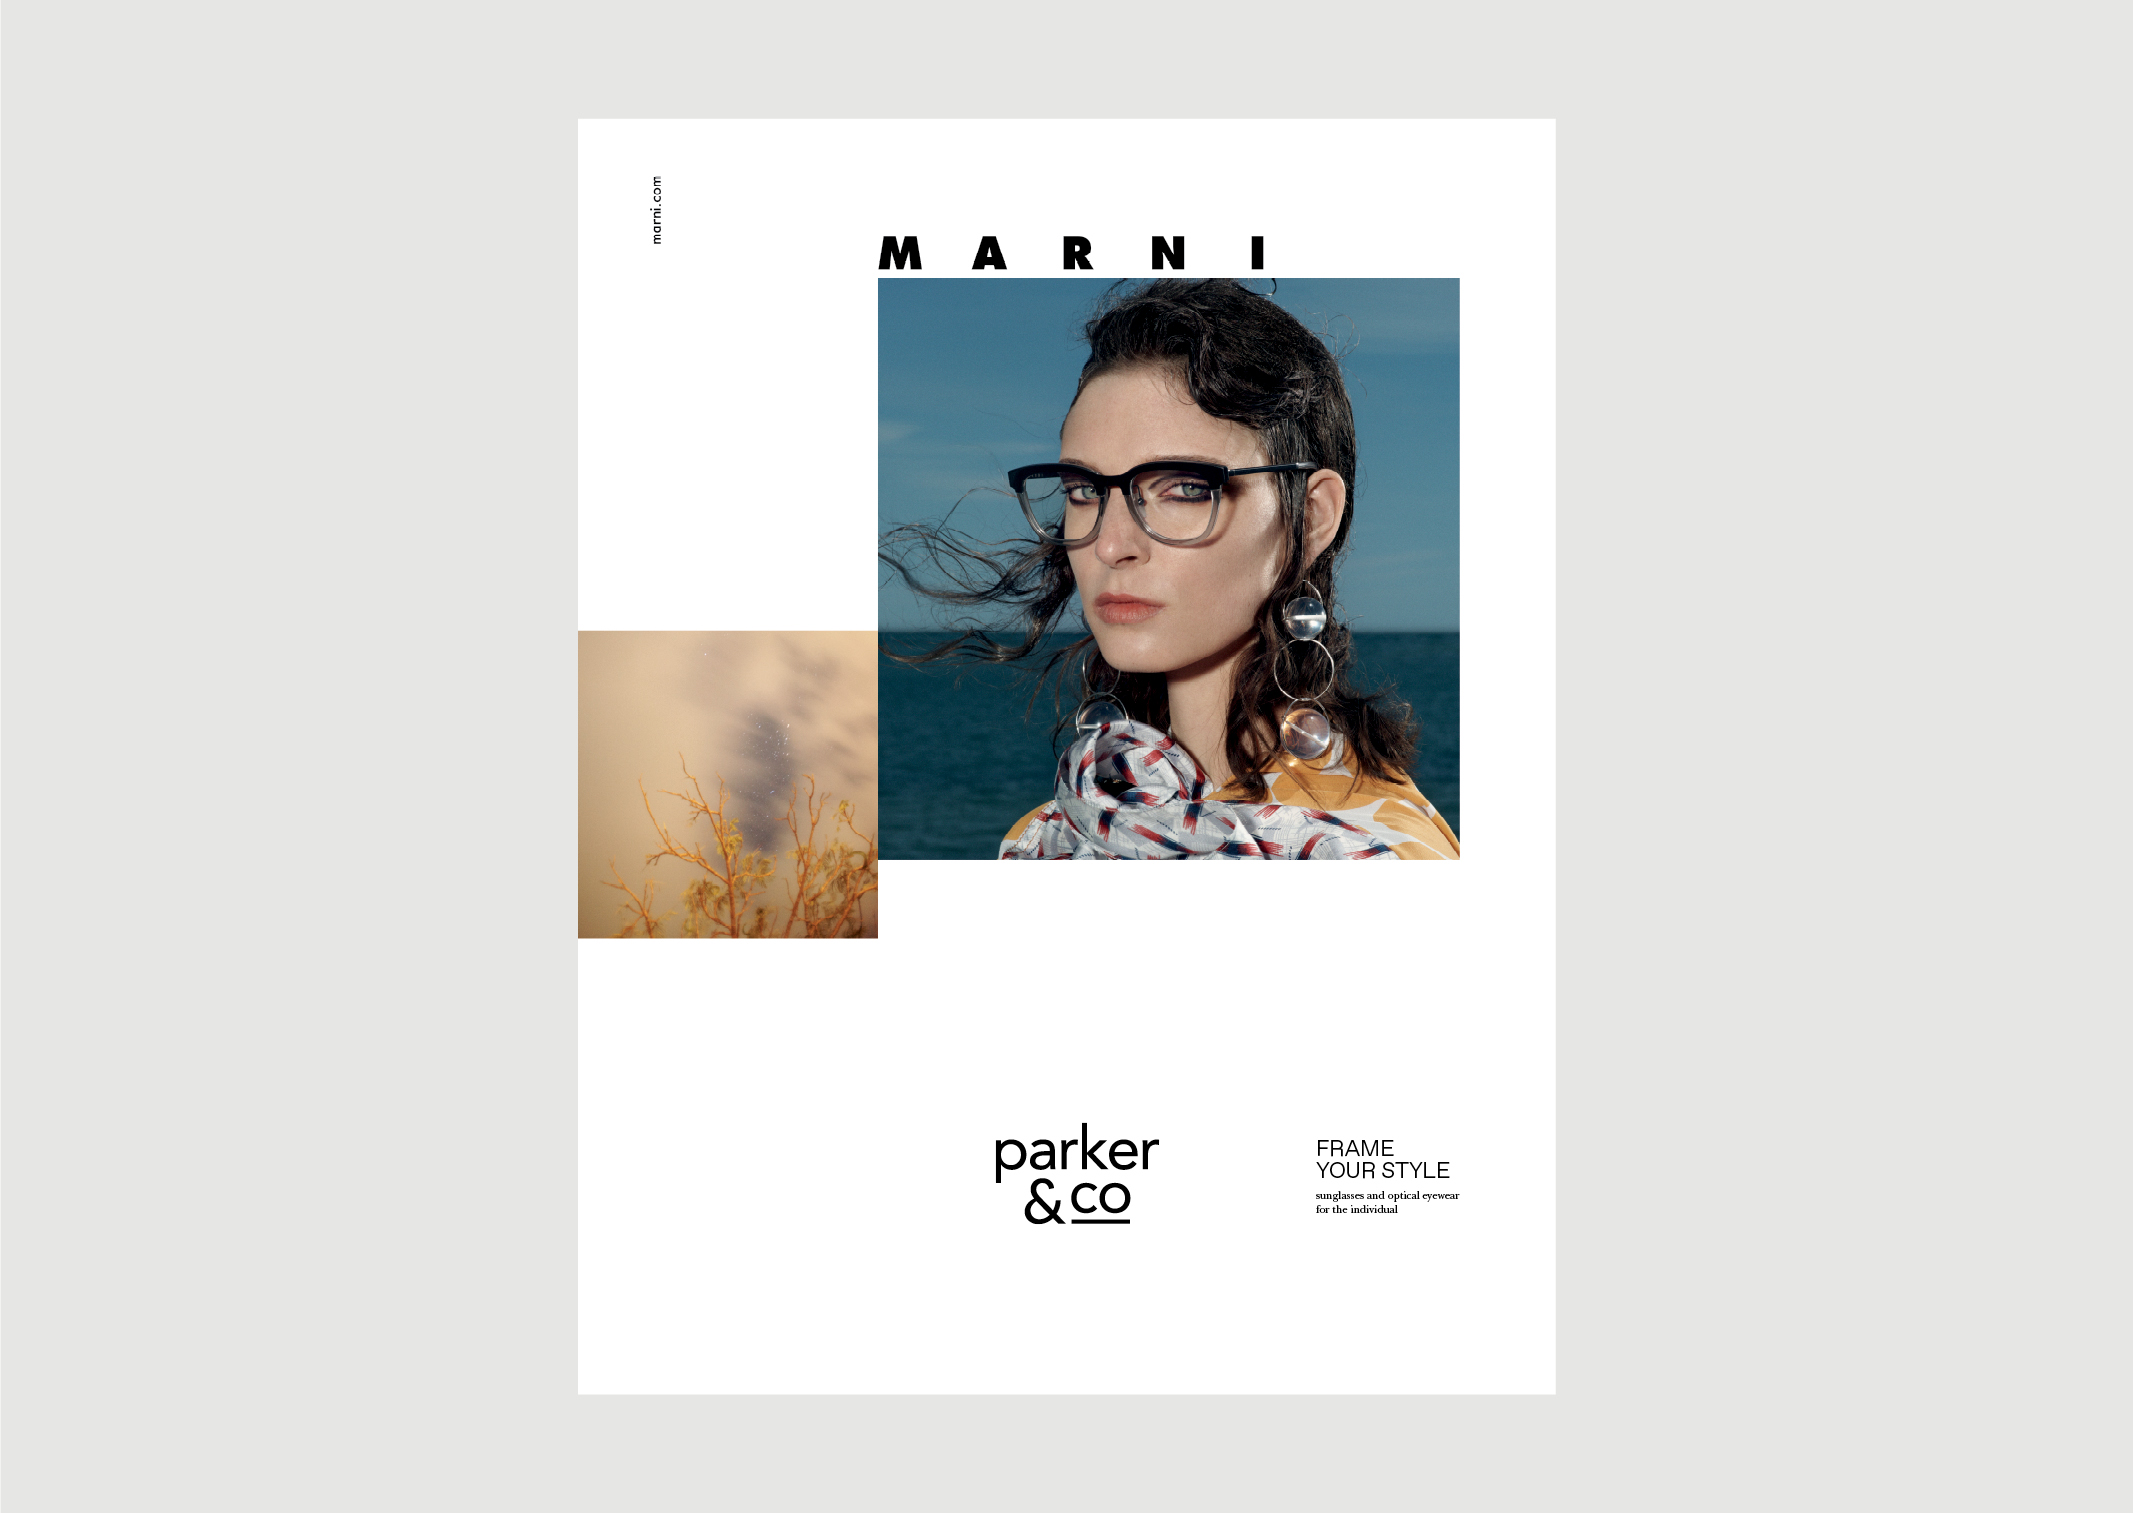 Parker and Co Eyewear – Denizen Ad – featuring Marni 2018